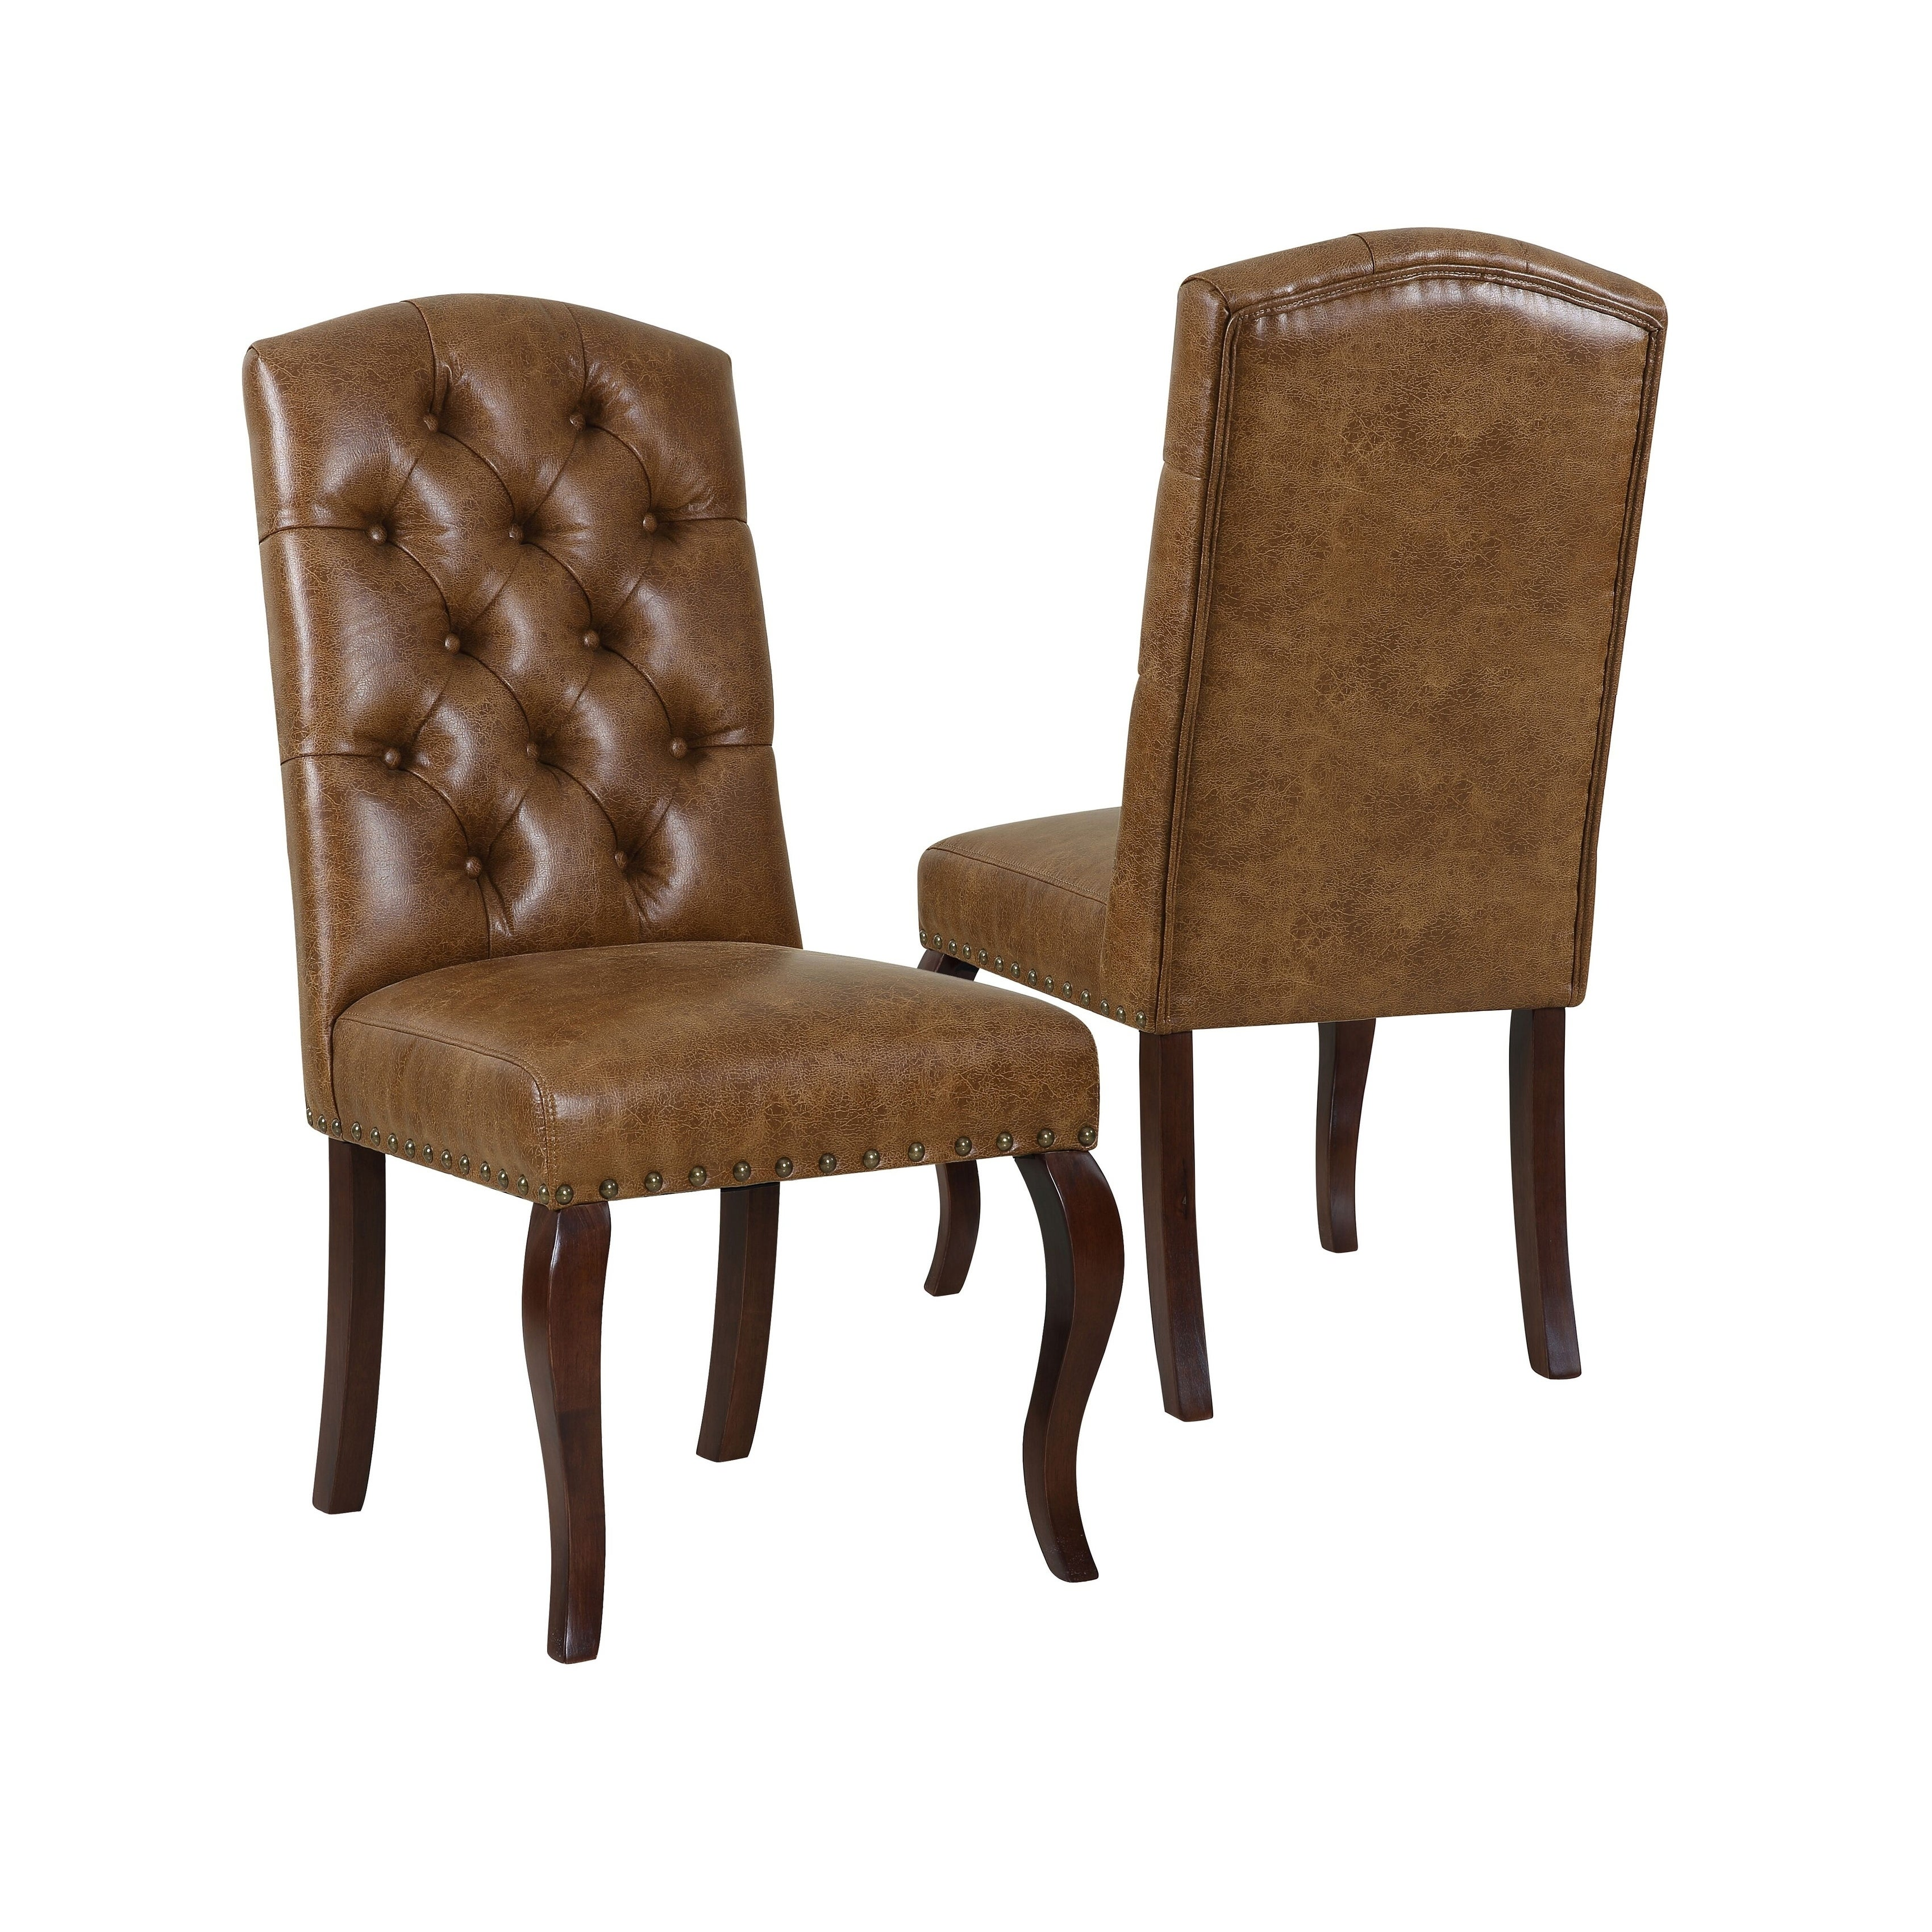 Homepop Tufted Back Dining Chair Light Brown Faux Leather Set Of 2